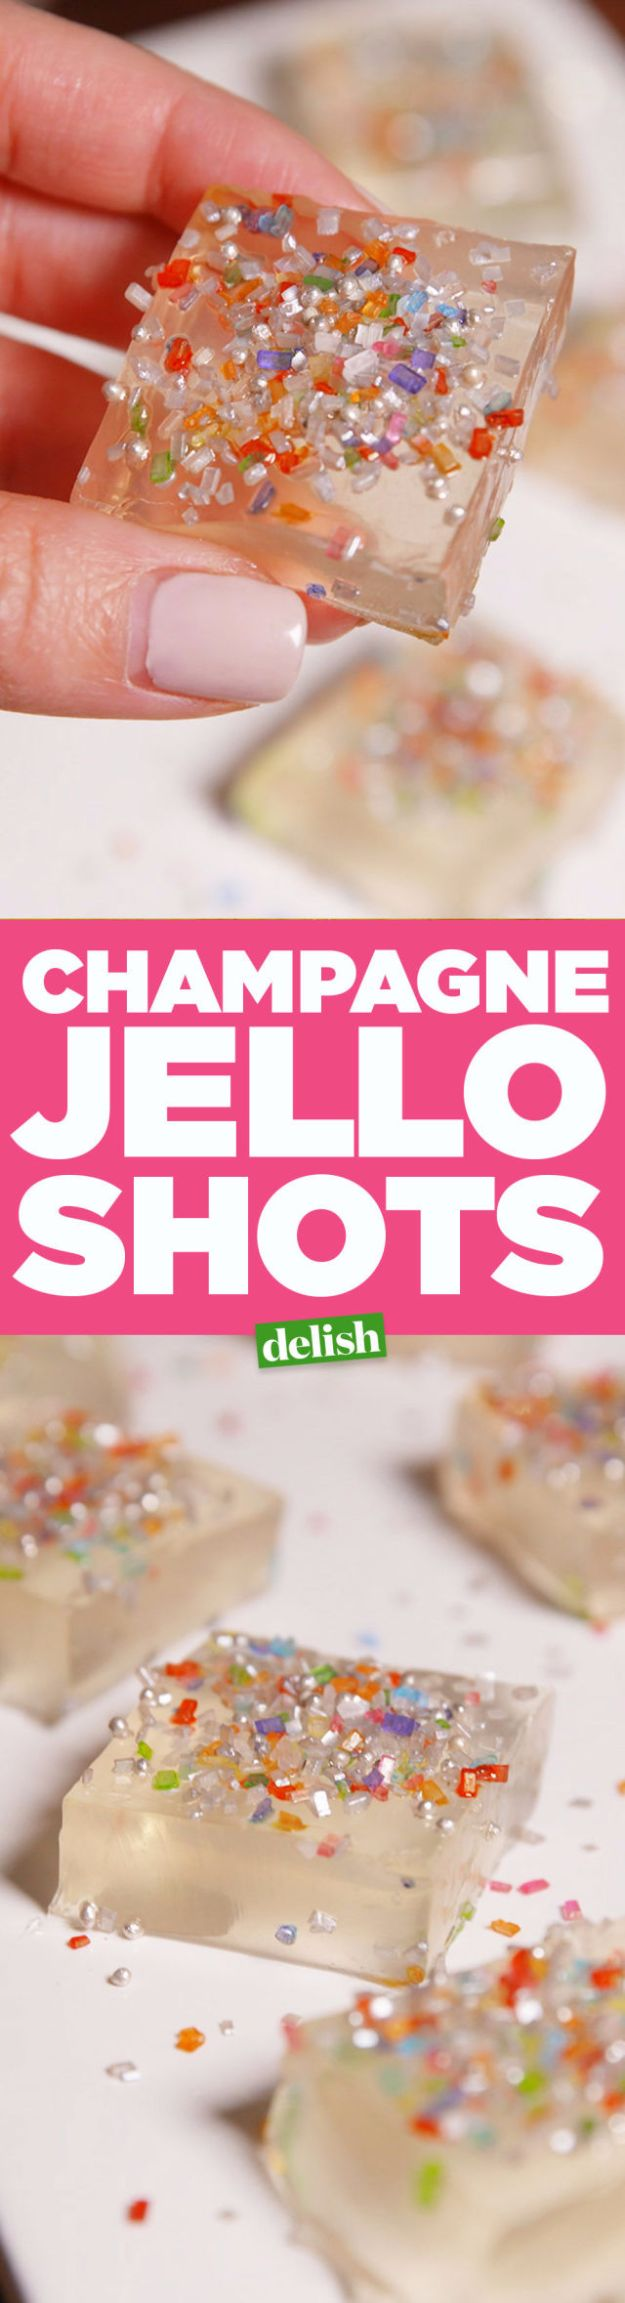 21 Best Jello Shot Ideas for a Party